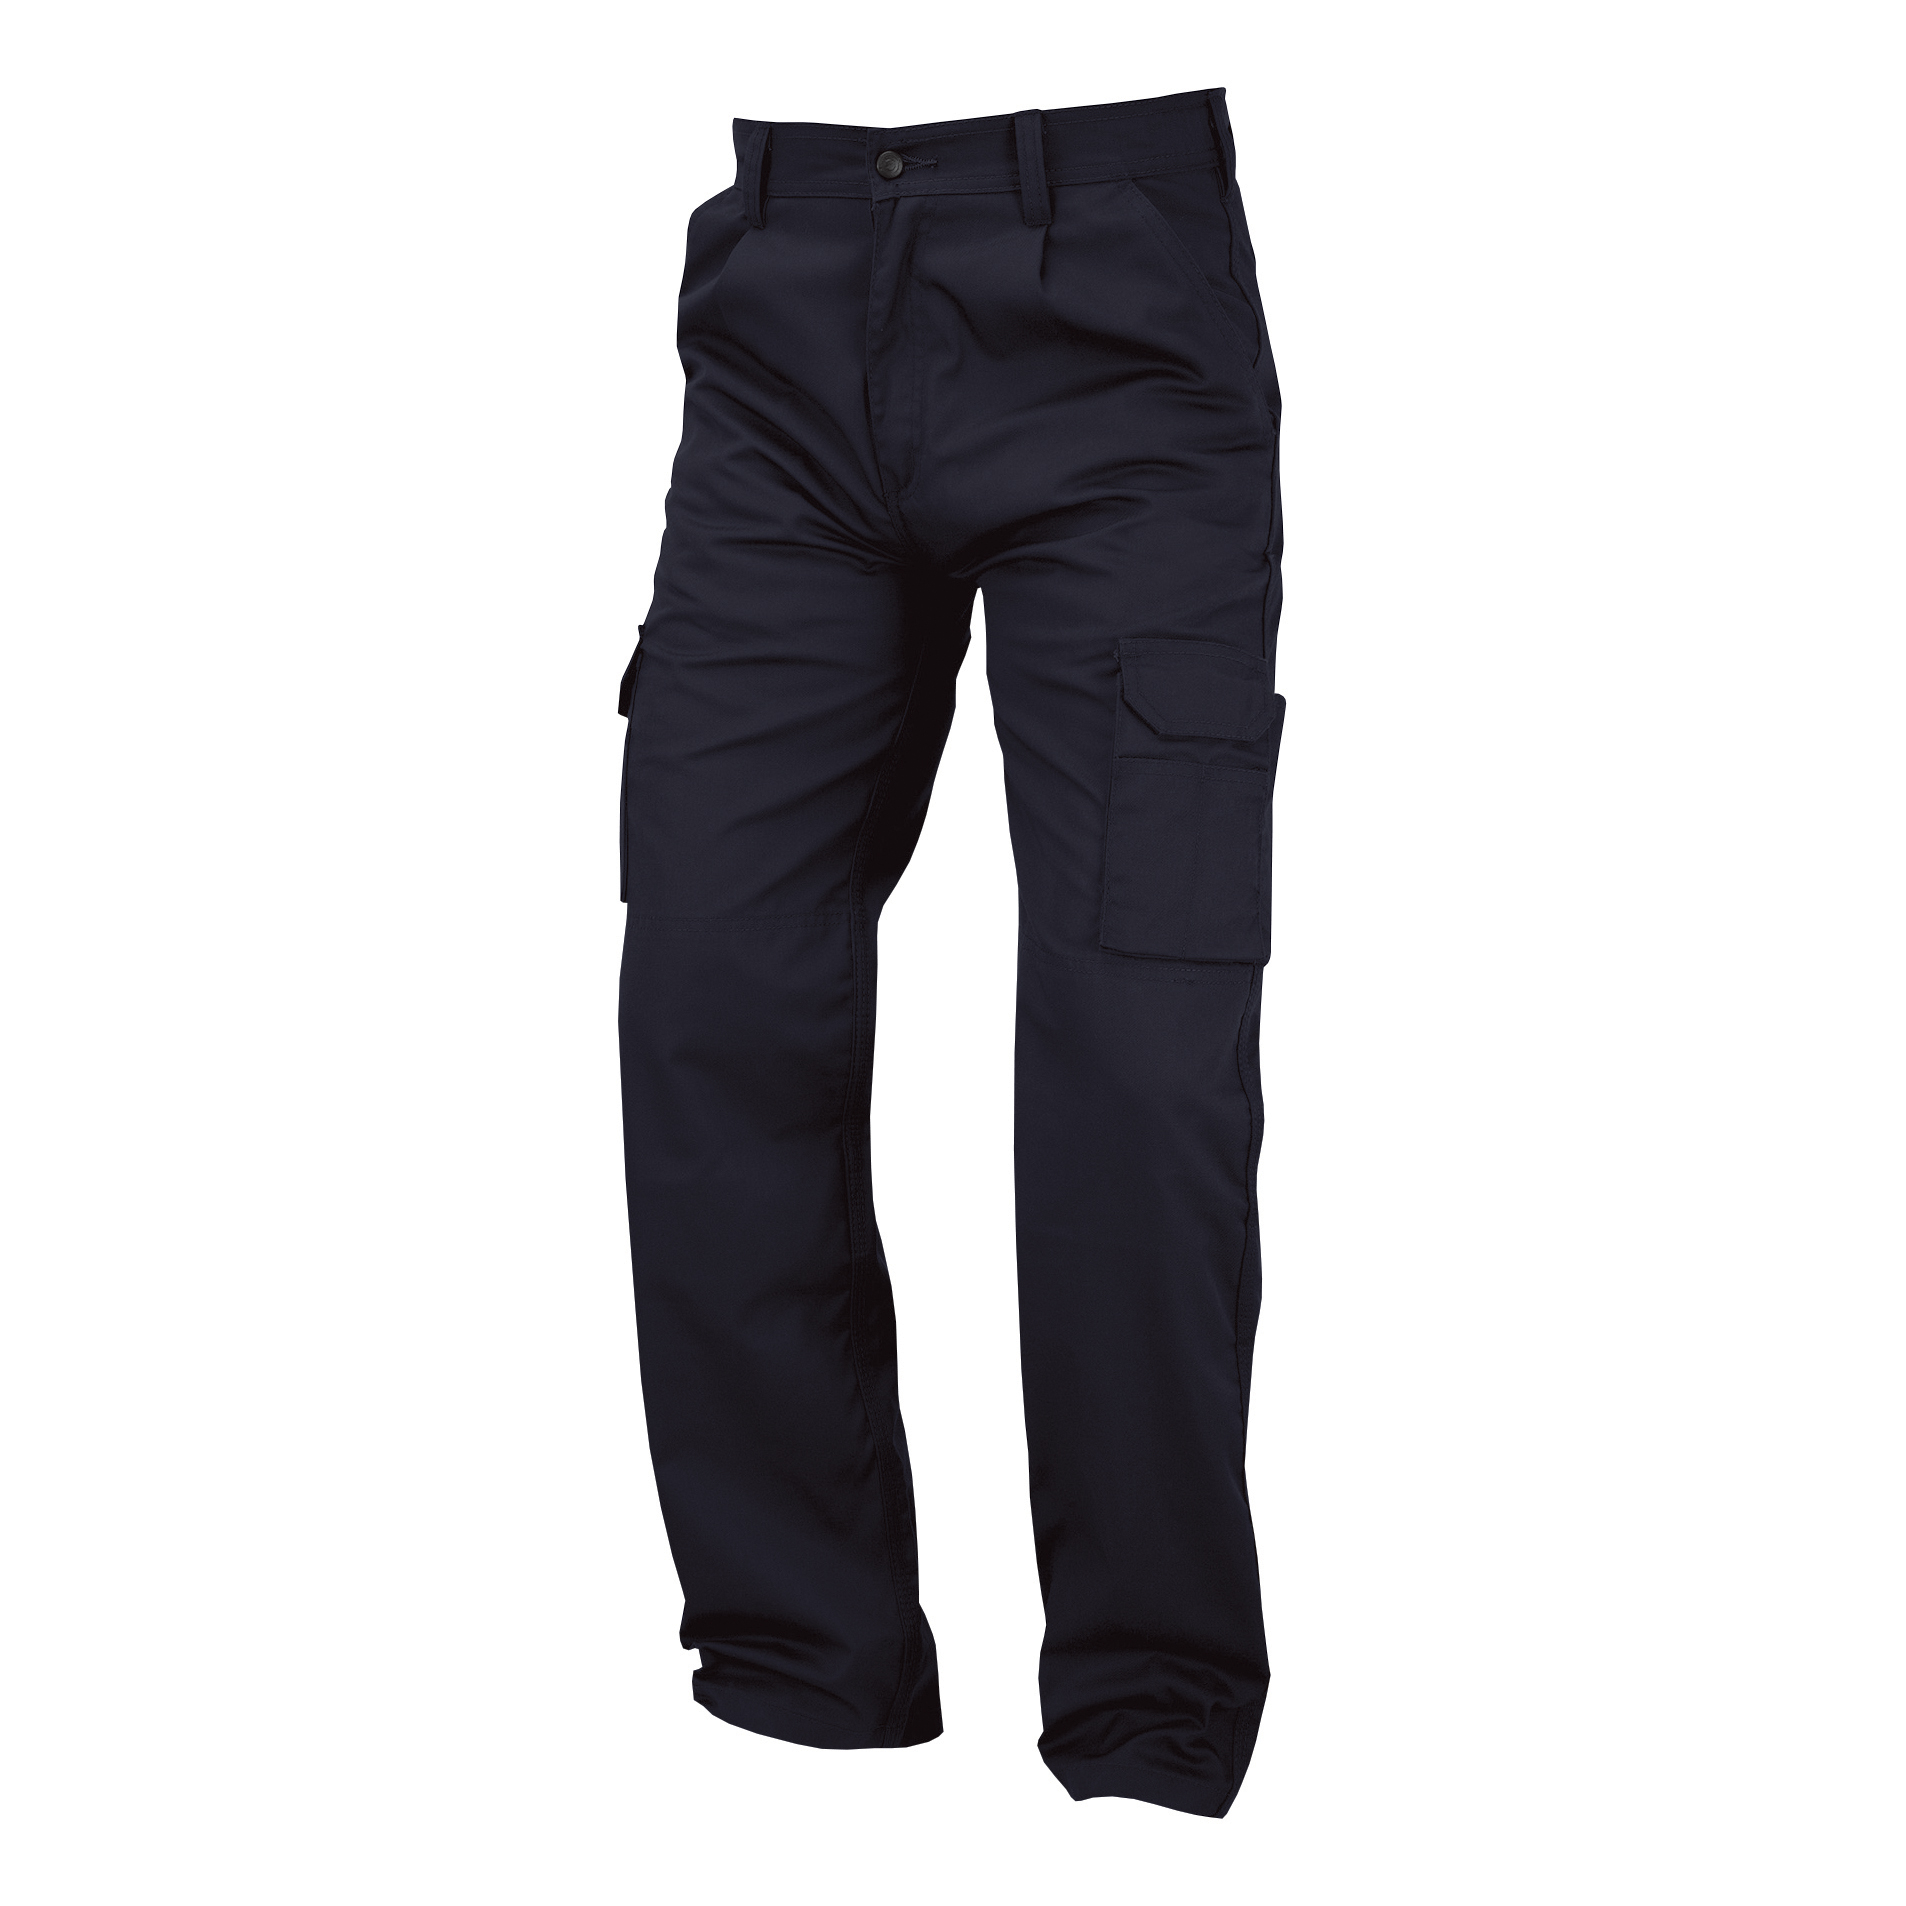 Combat / Cargo Combat Trousers Polycotton with Pockets 38in Regular Navy Blue Ref PCTHWN38 *1-3 Days Lead Time*